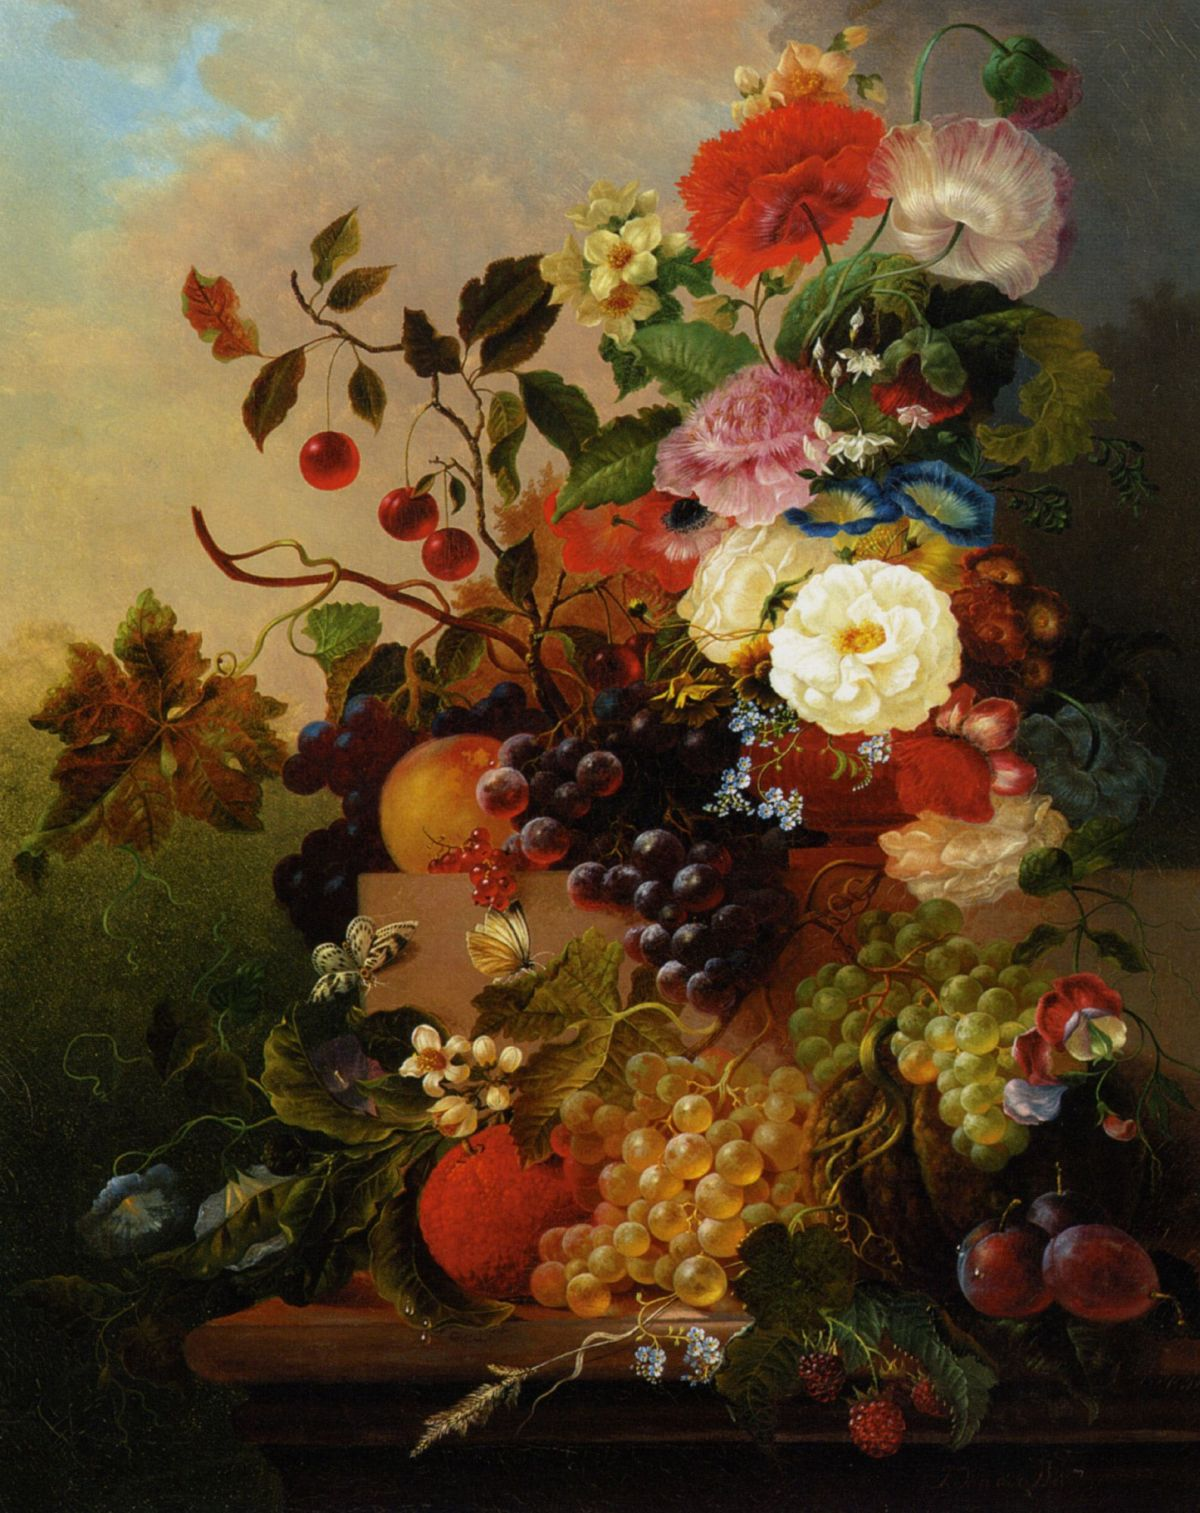 Poppies Peonies Roses and other Flowers with Grapes on a Marble Ledge by Jan Van Der Waarden